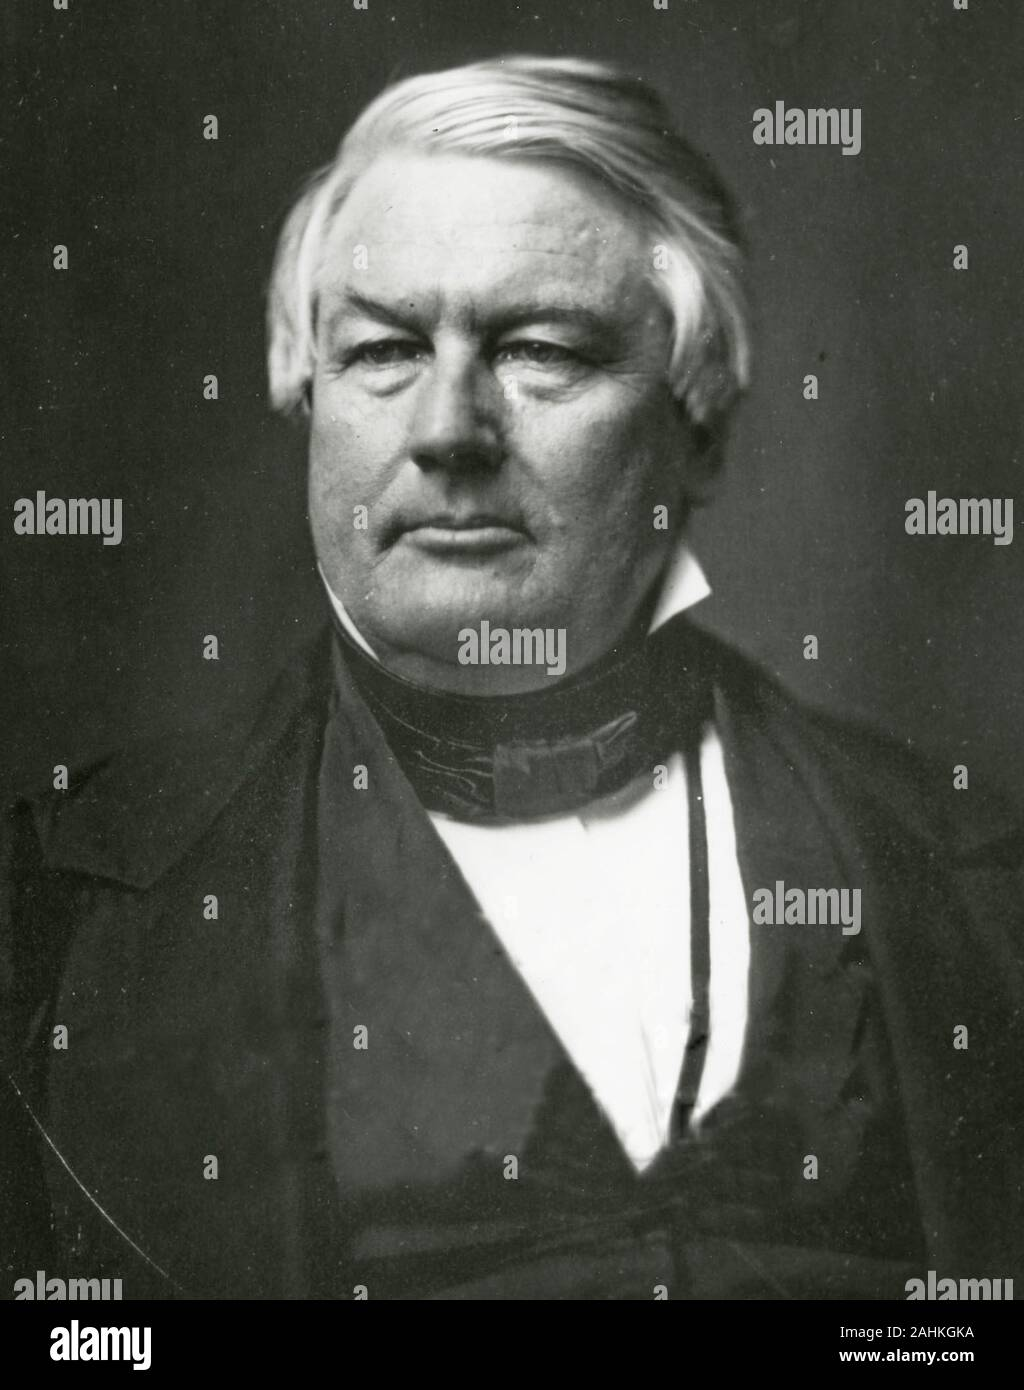 Millard Fillmore (January 7, 1800 – March 8, 1874) was the 13th president of the United States (1850–1853), the last to be a member of the Whig Party while in the White House. Stock Photo